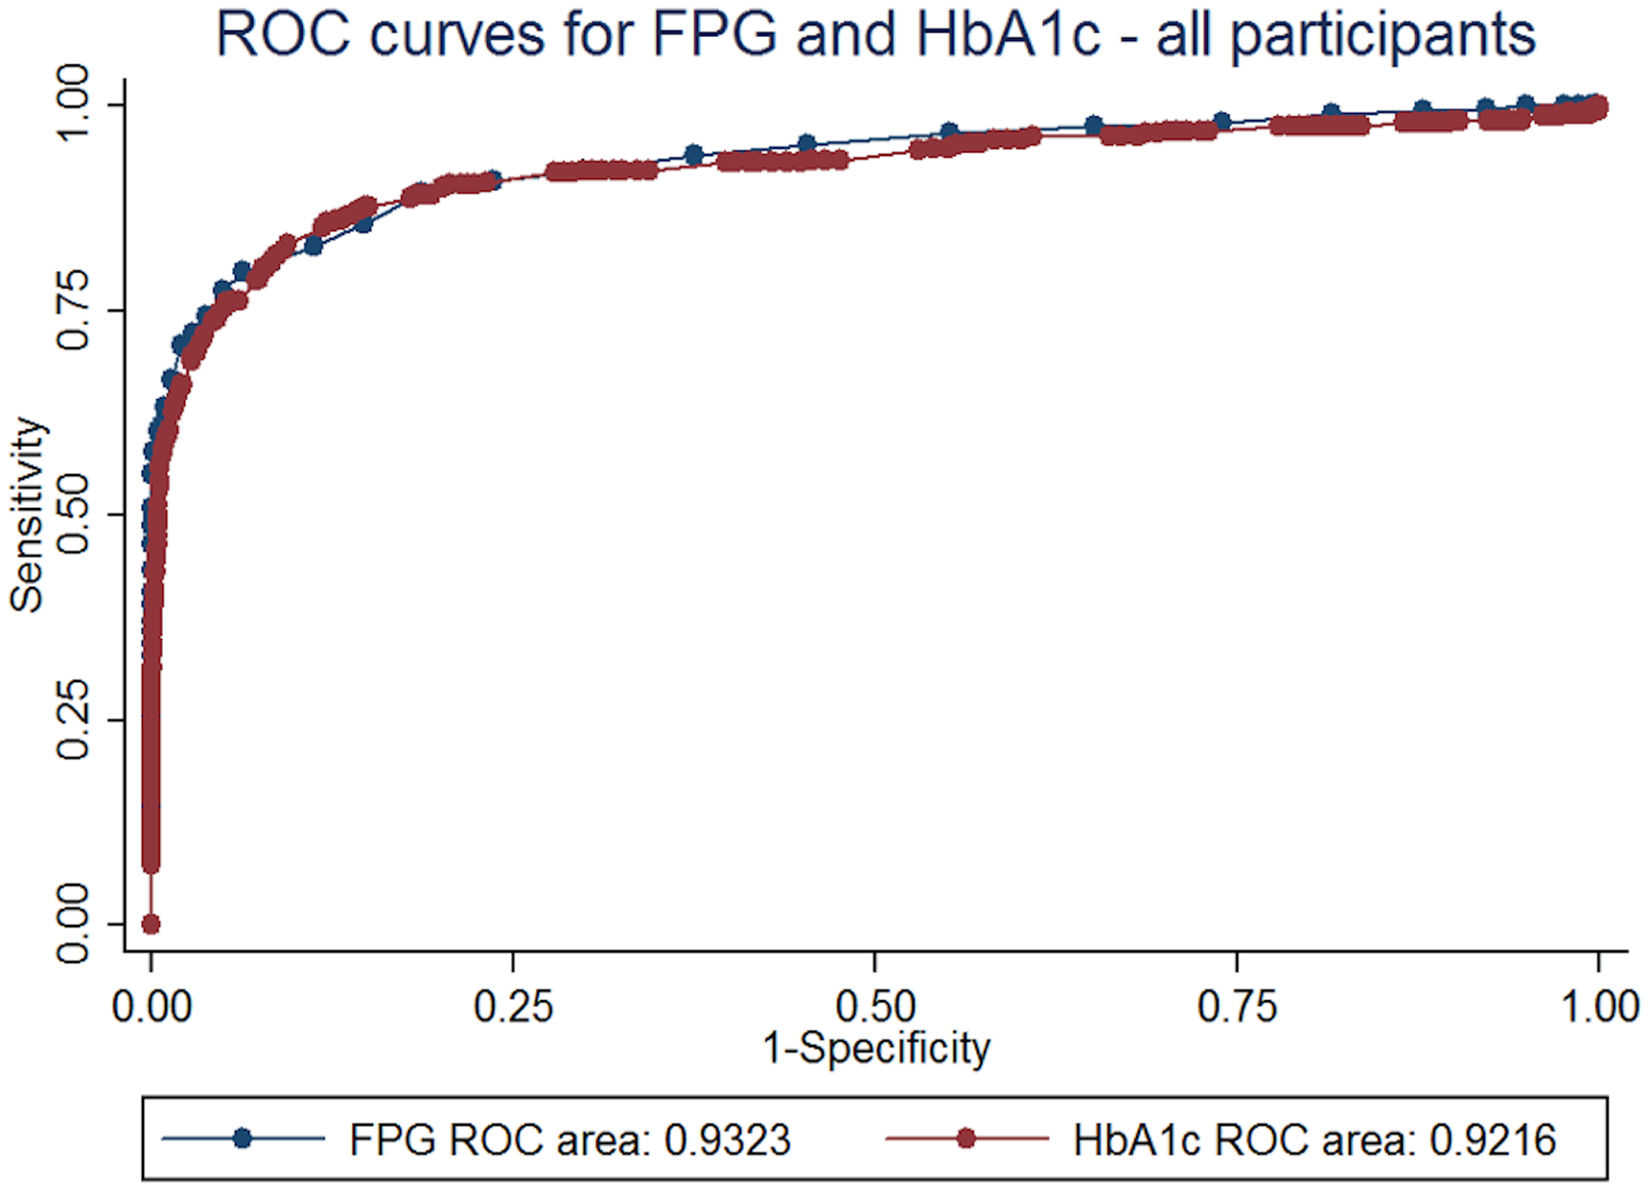 Screening for diabetes with HbA1c: Test performance of HbA1c